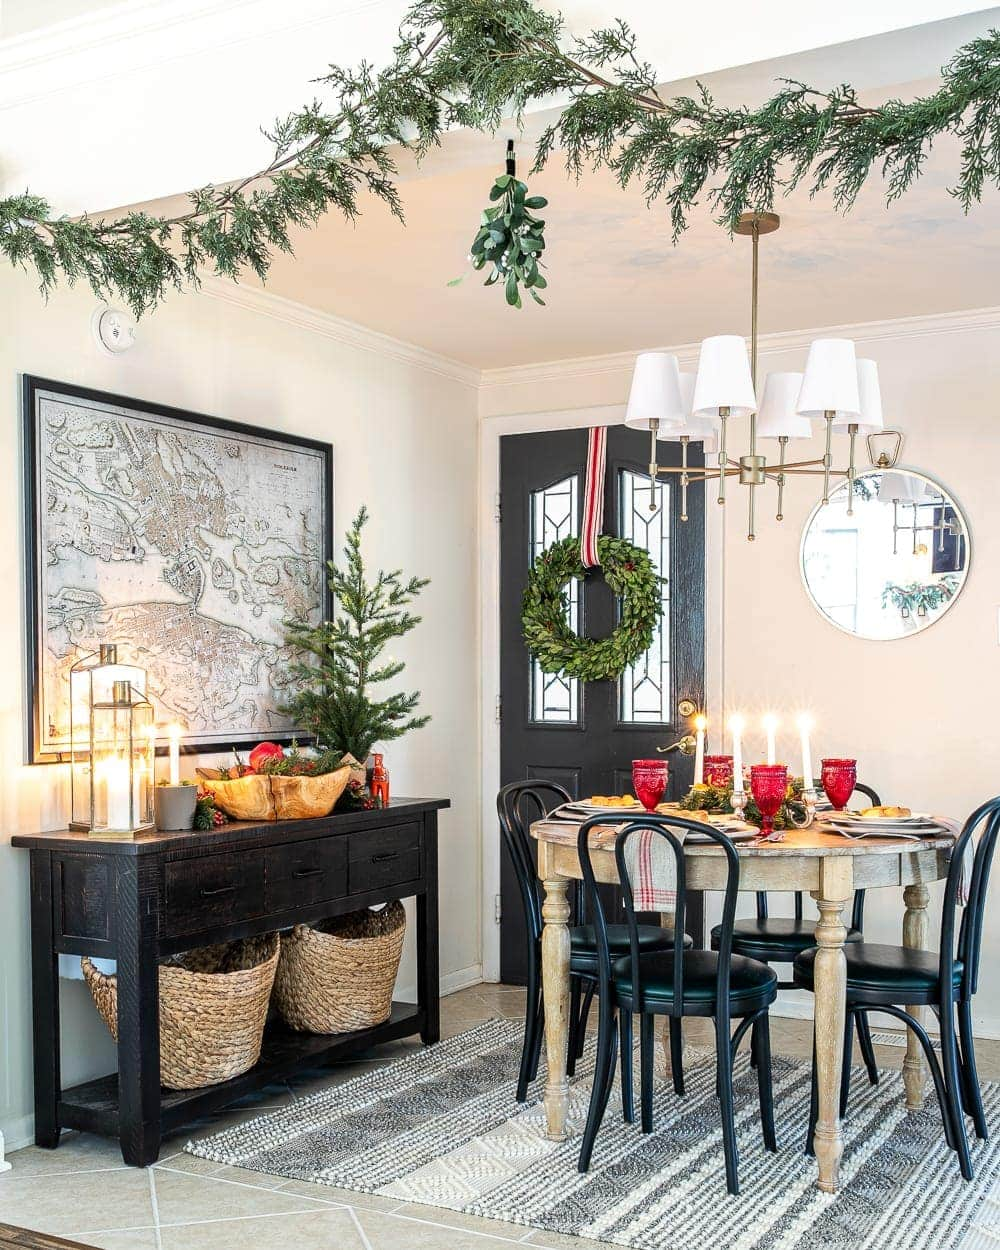 Christmas decor ideas | real looking artificial garland and mistletoe in a breakfast nook decorated for the holidays